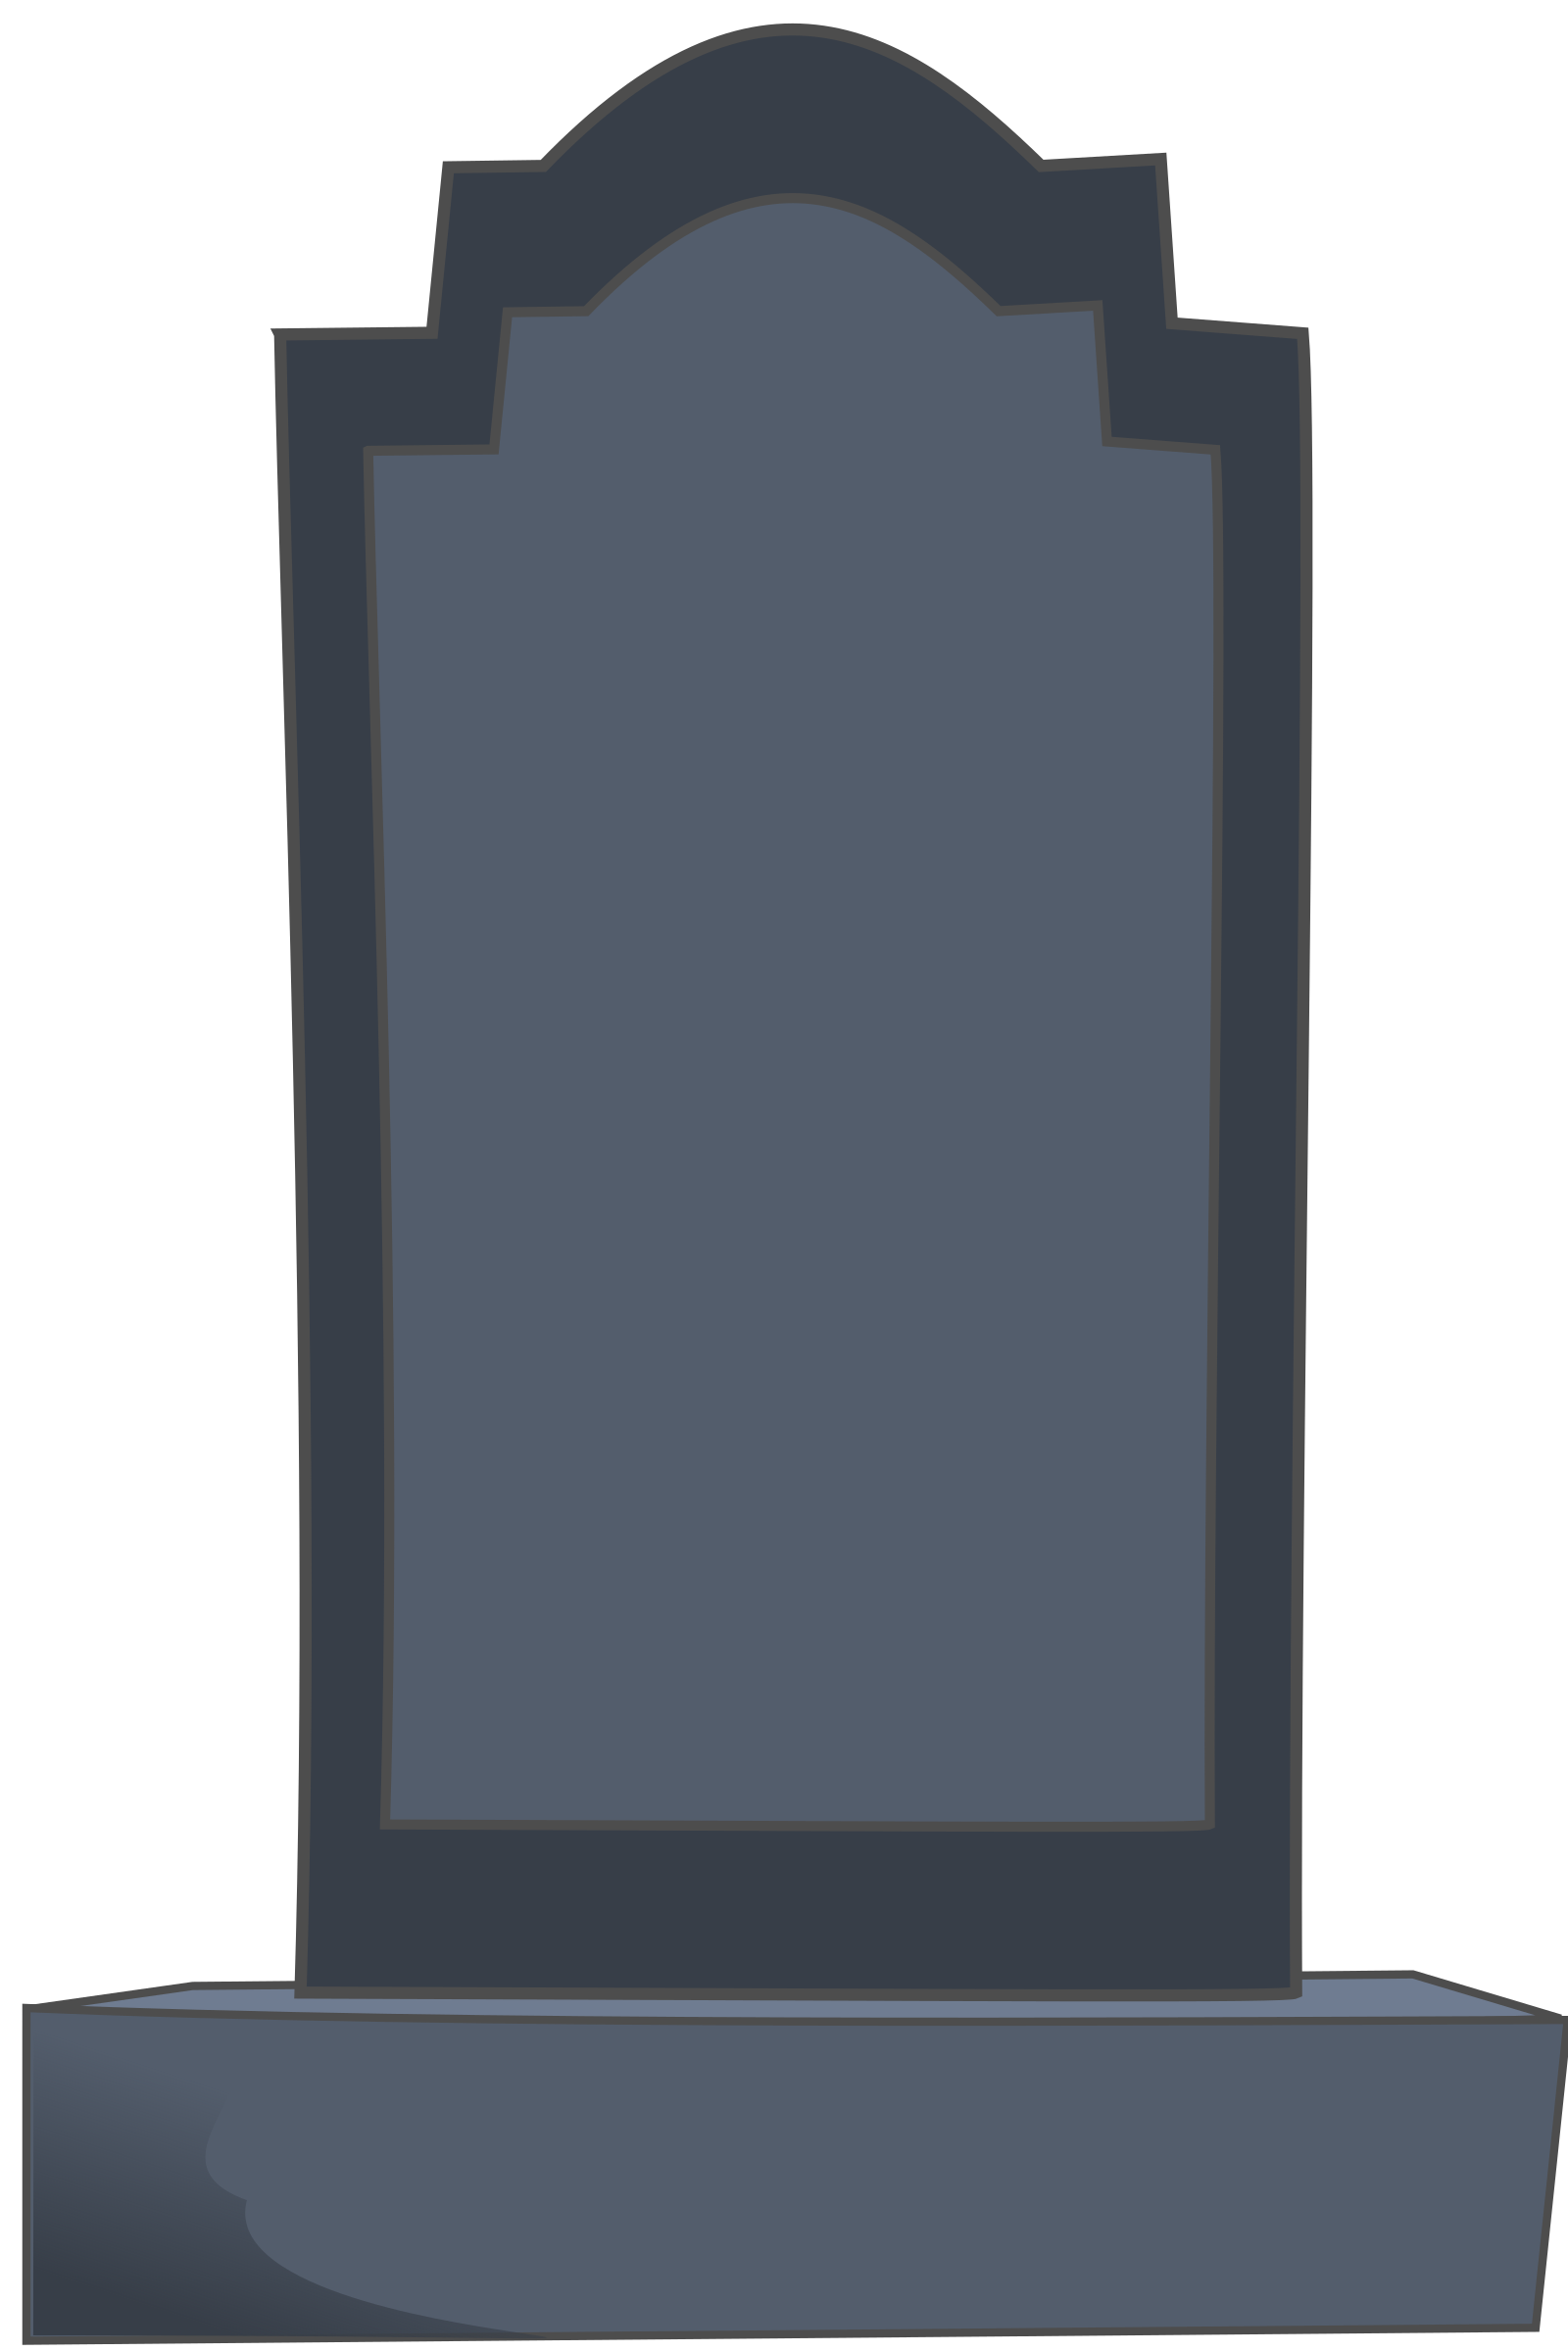 Blank tombstone png. Clipart l pide big